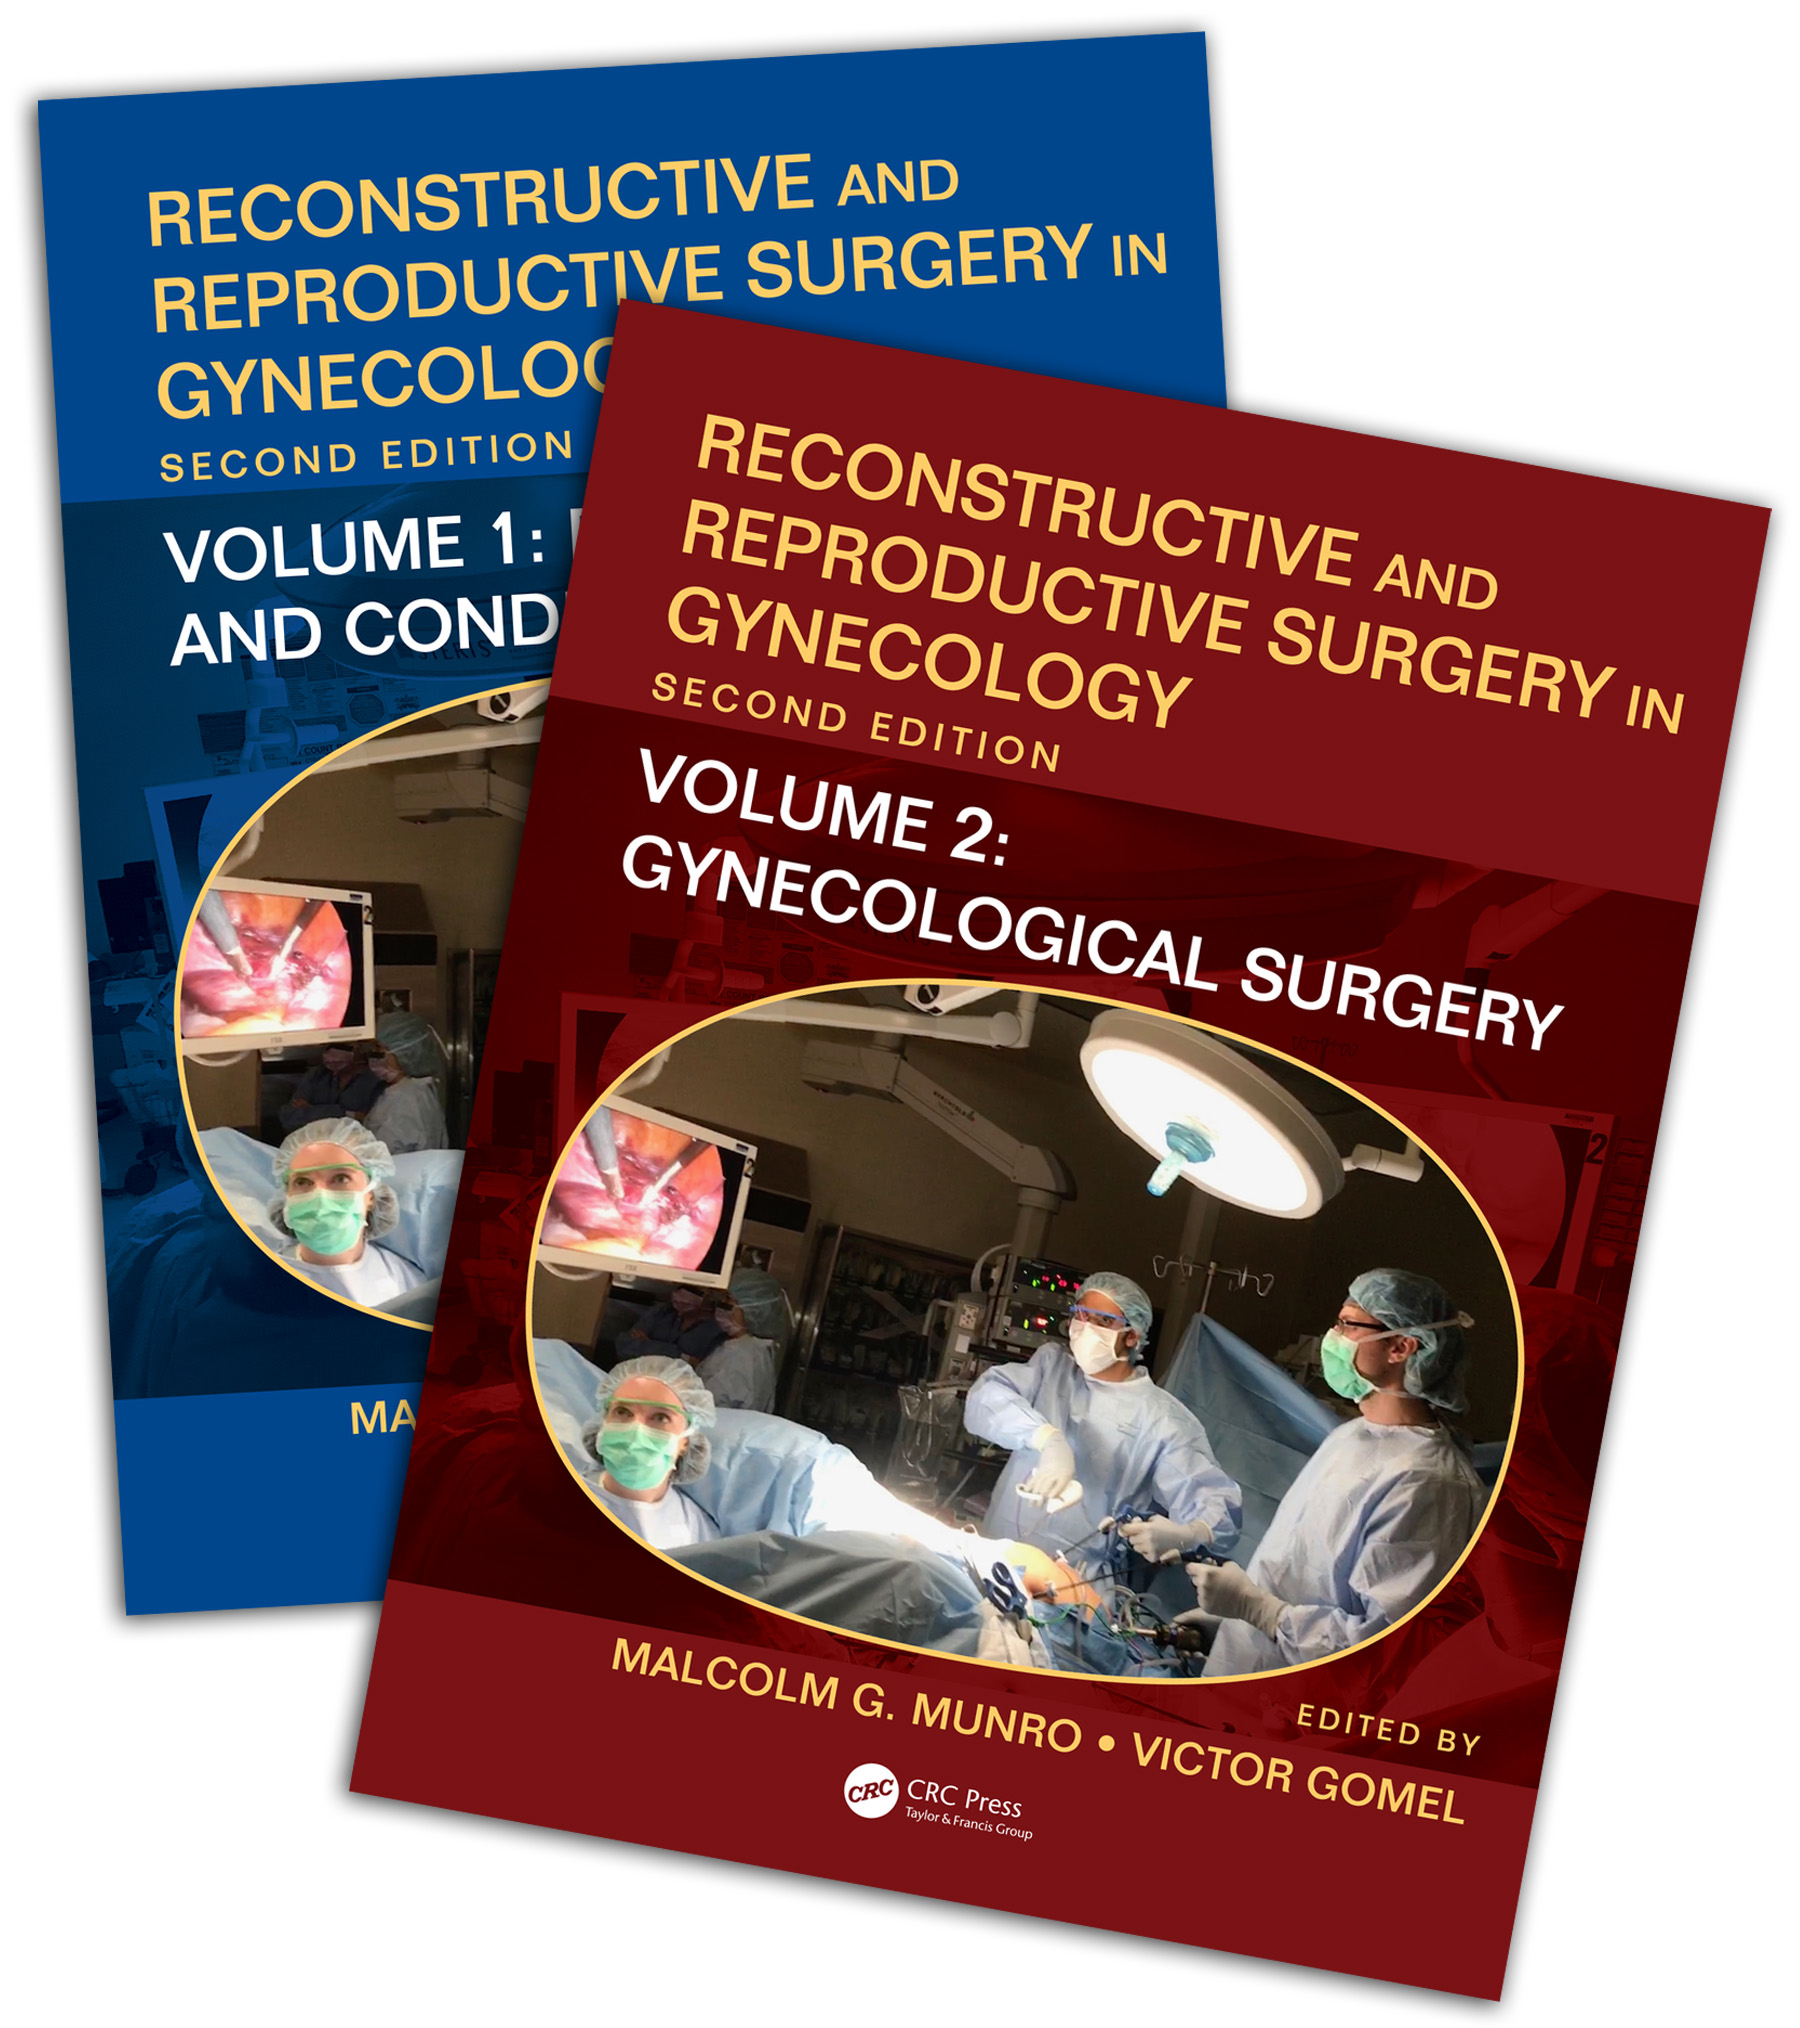 Reconstructive and Reproductive Surgery in Gynecology, Second Edition Two Volume Set book cover